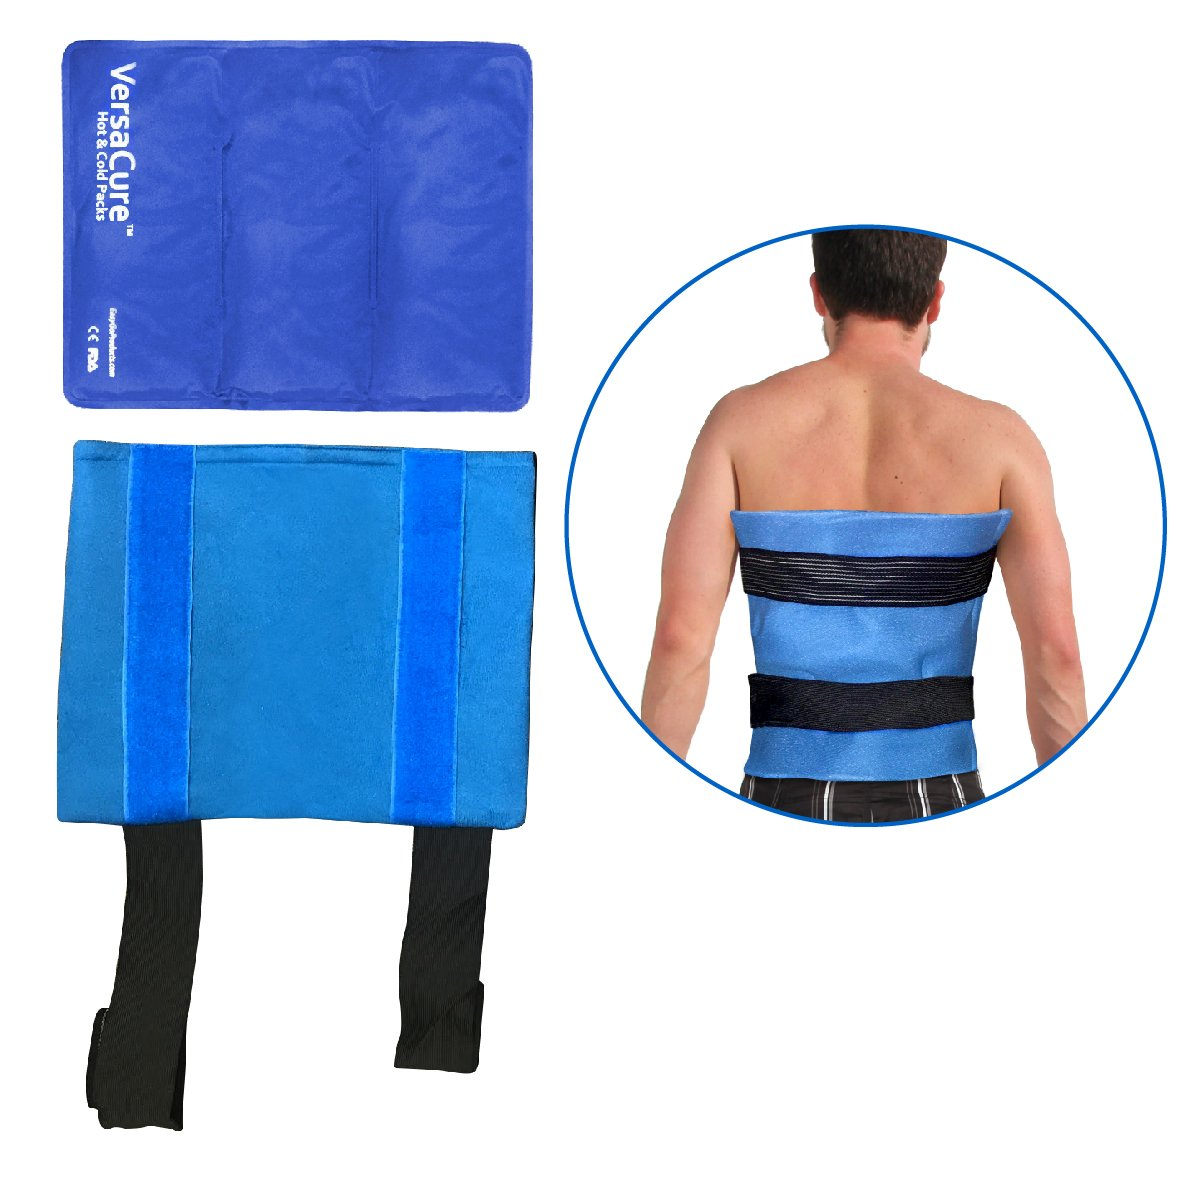 EasyGoProducts Back HOT - Cold Pack for Injuries – ICE – HOT Pack Good for Home USE, Medical USE and Therapy. Designed SPECIFICALLY for Back BUT CAN Also BE Used ON Other Parts of The Body